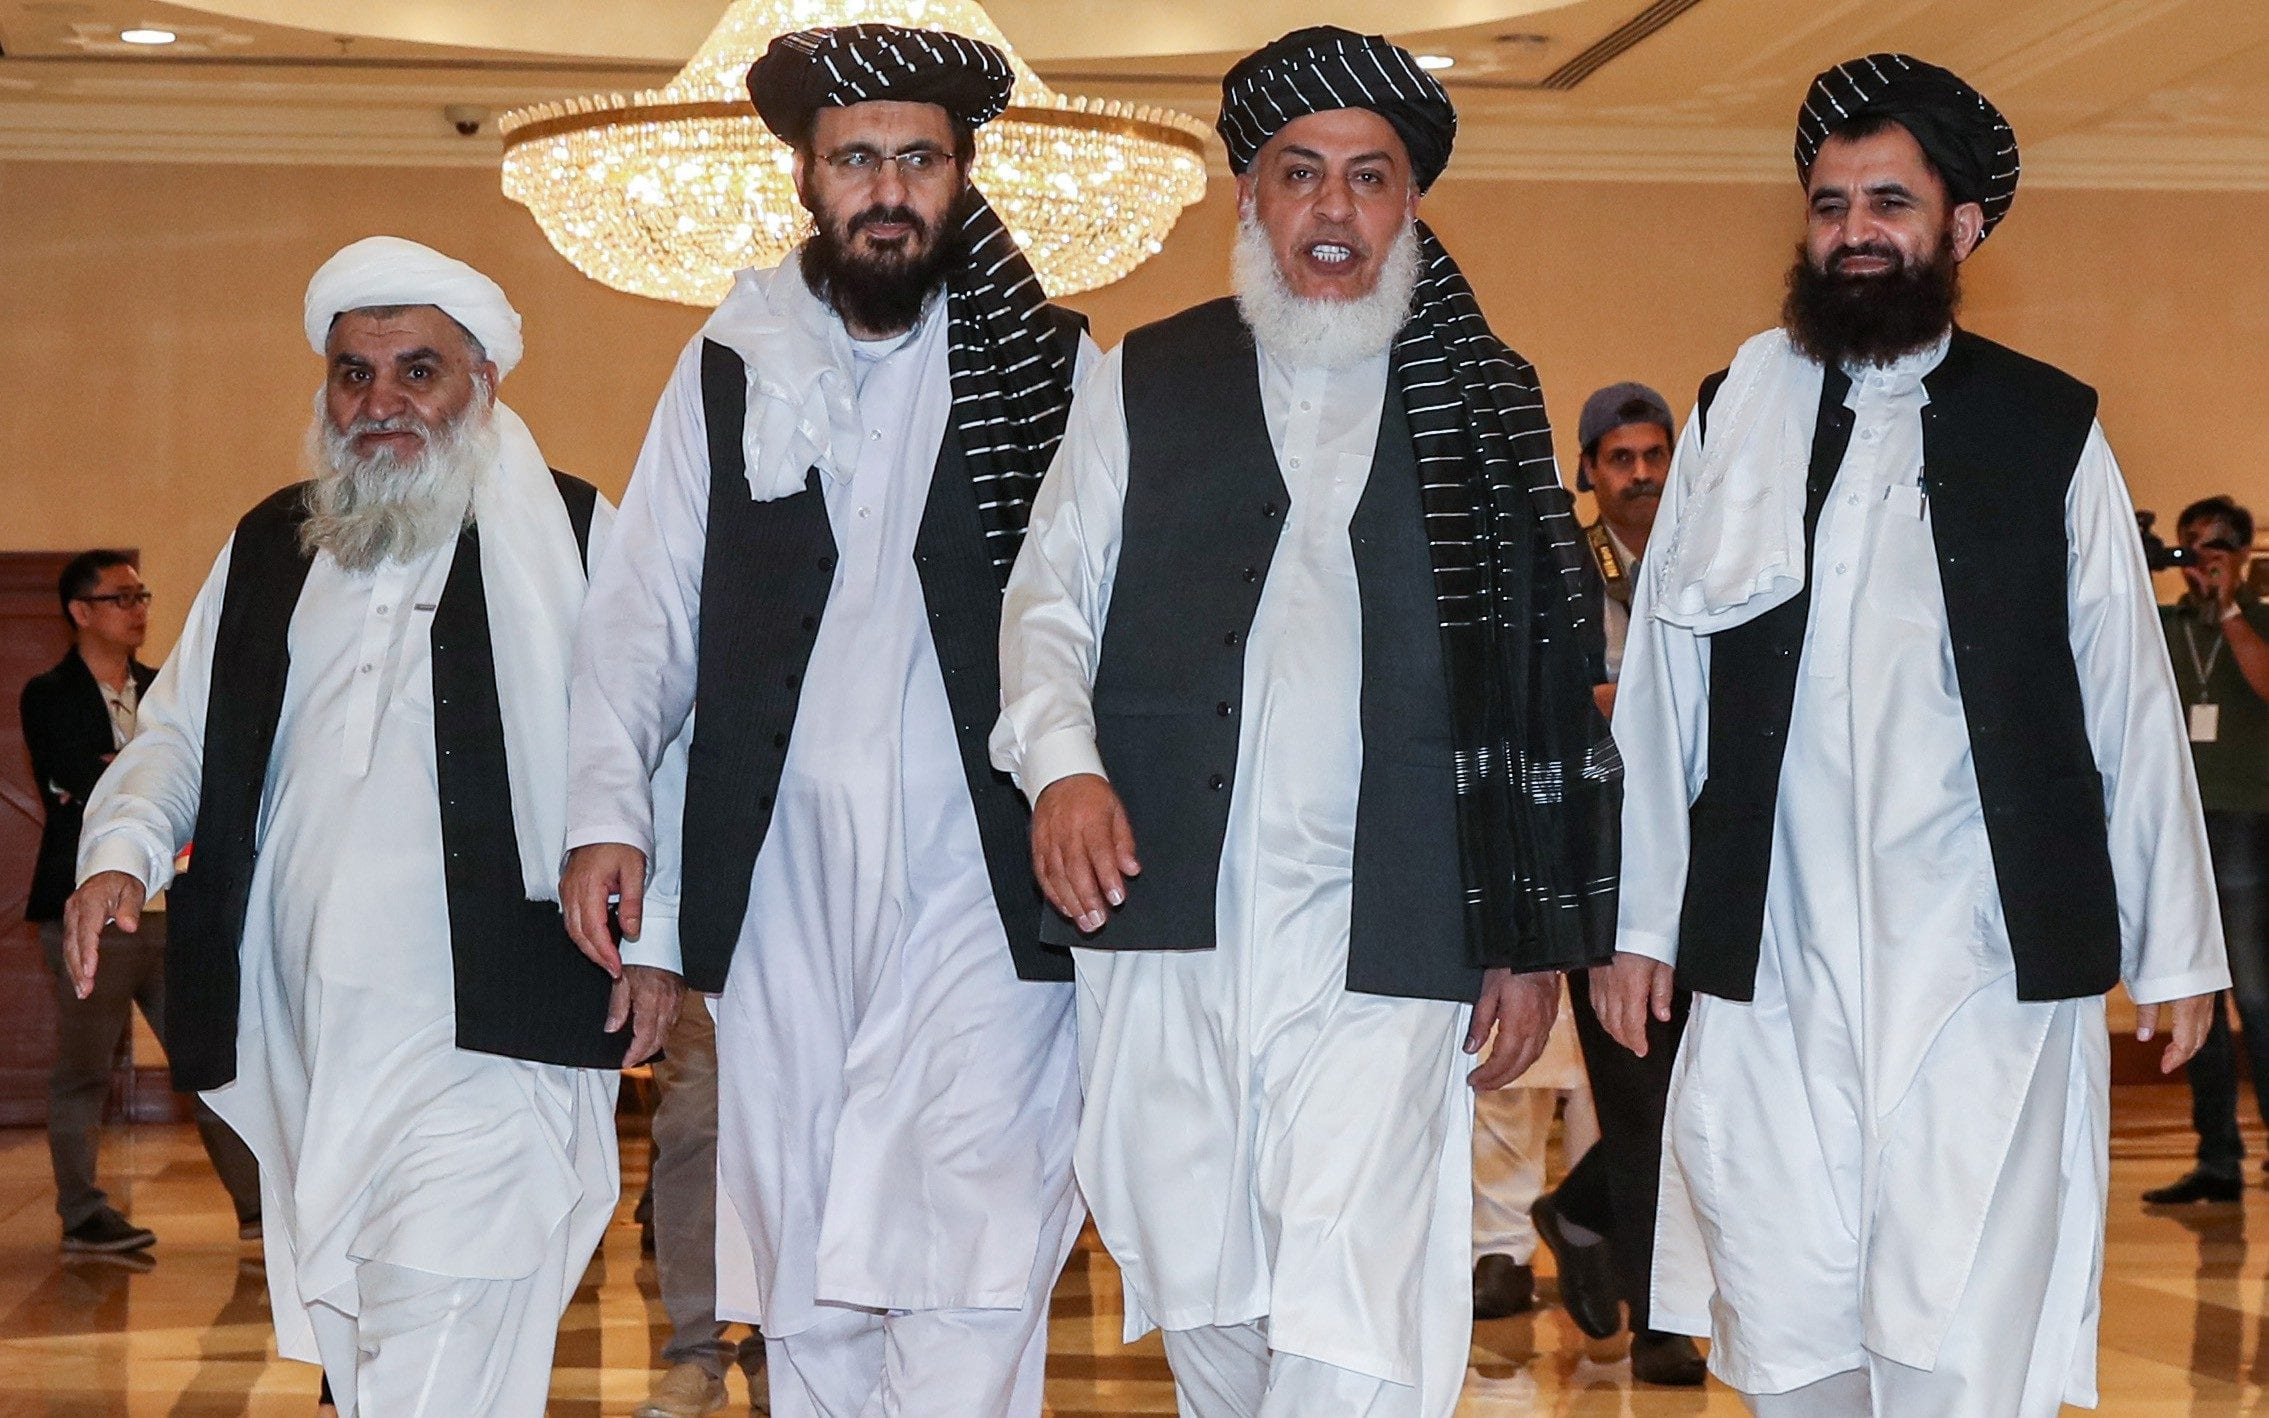 Taliban says peace deal with US to end Afghan war is close